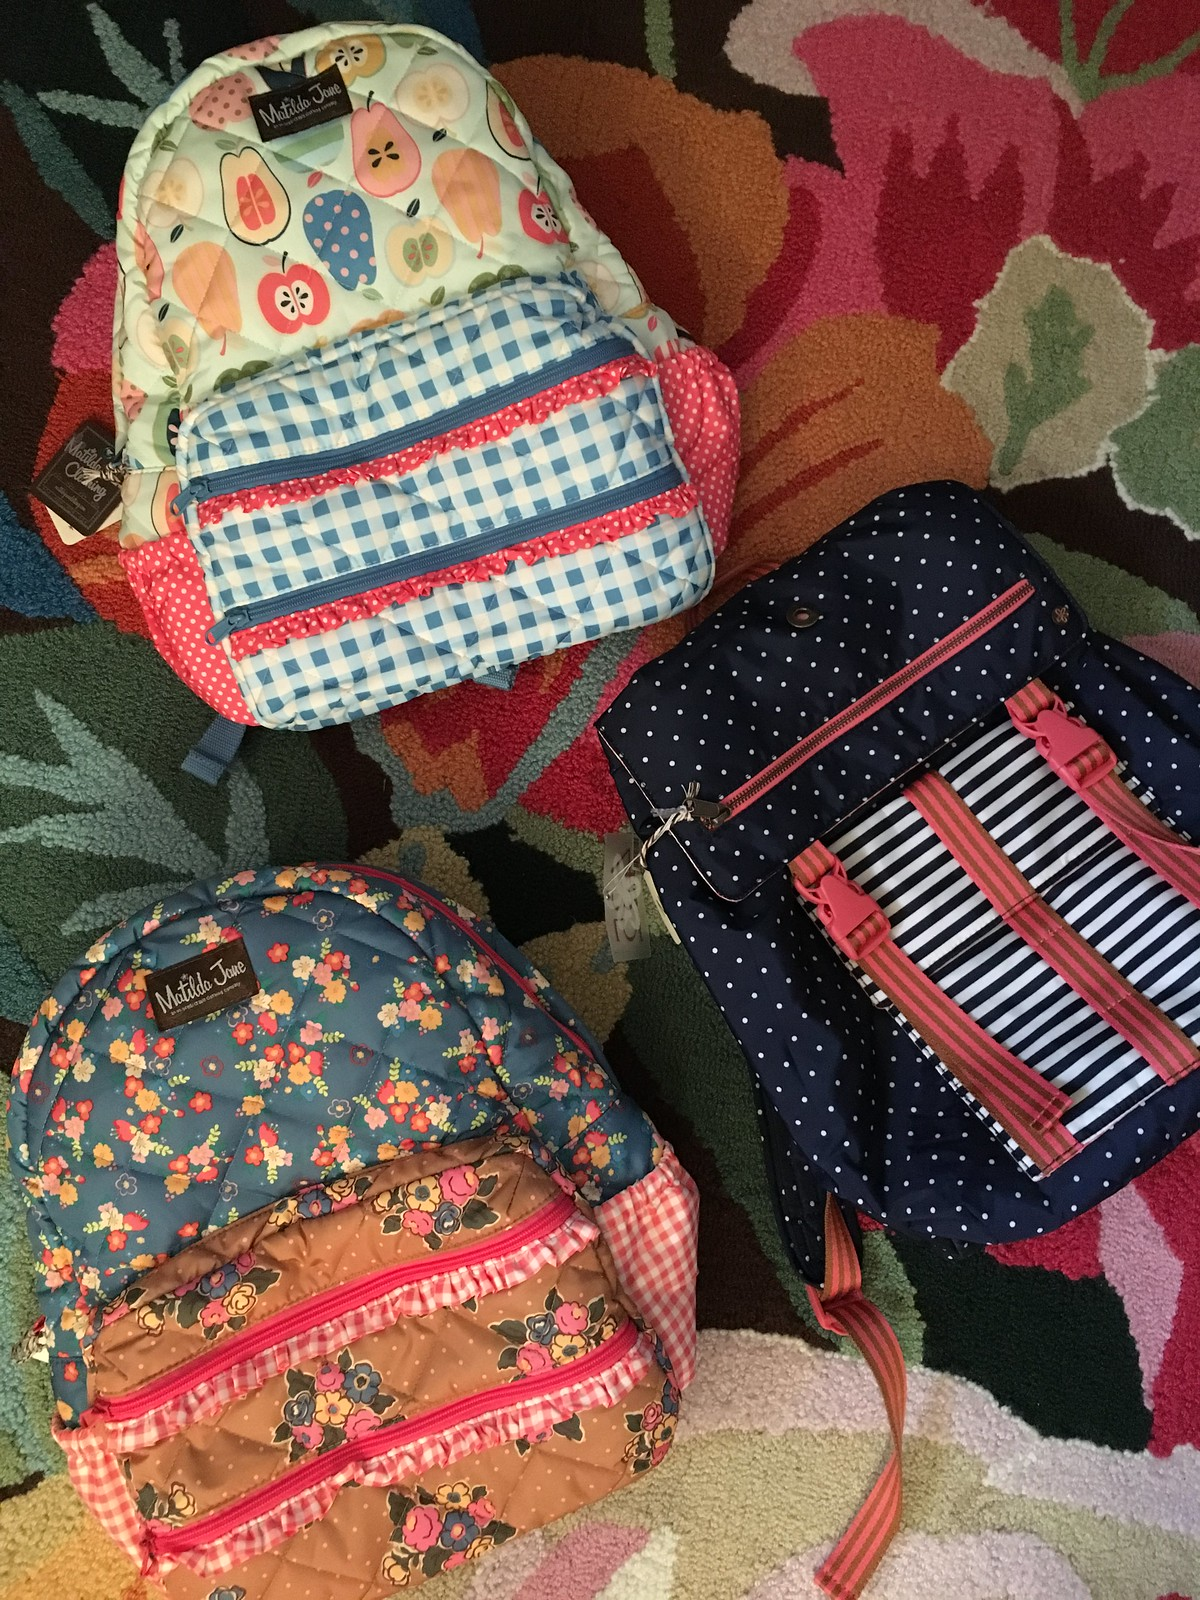 Matilda Jane's Back to School Backpack promo